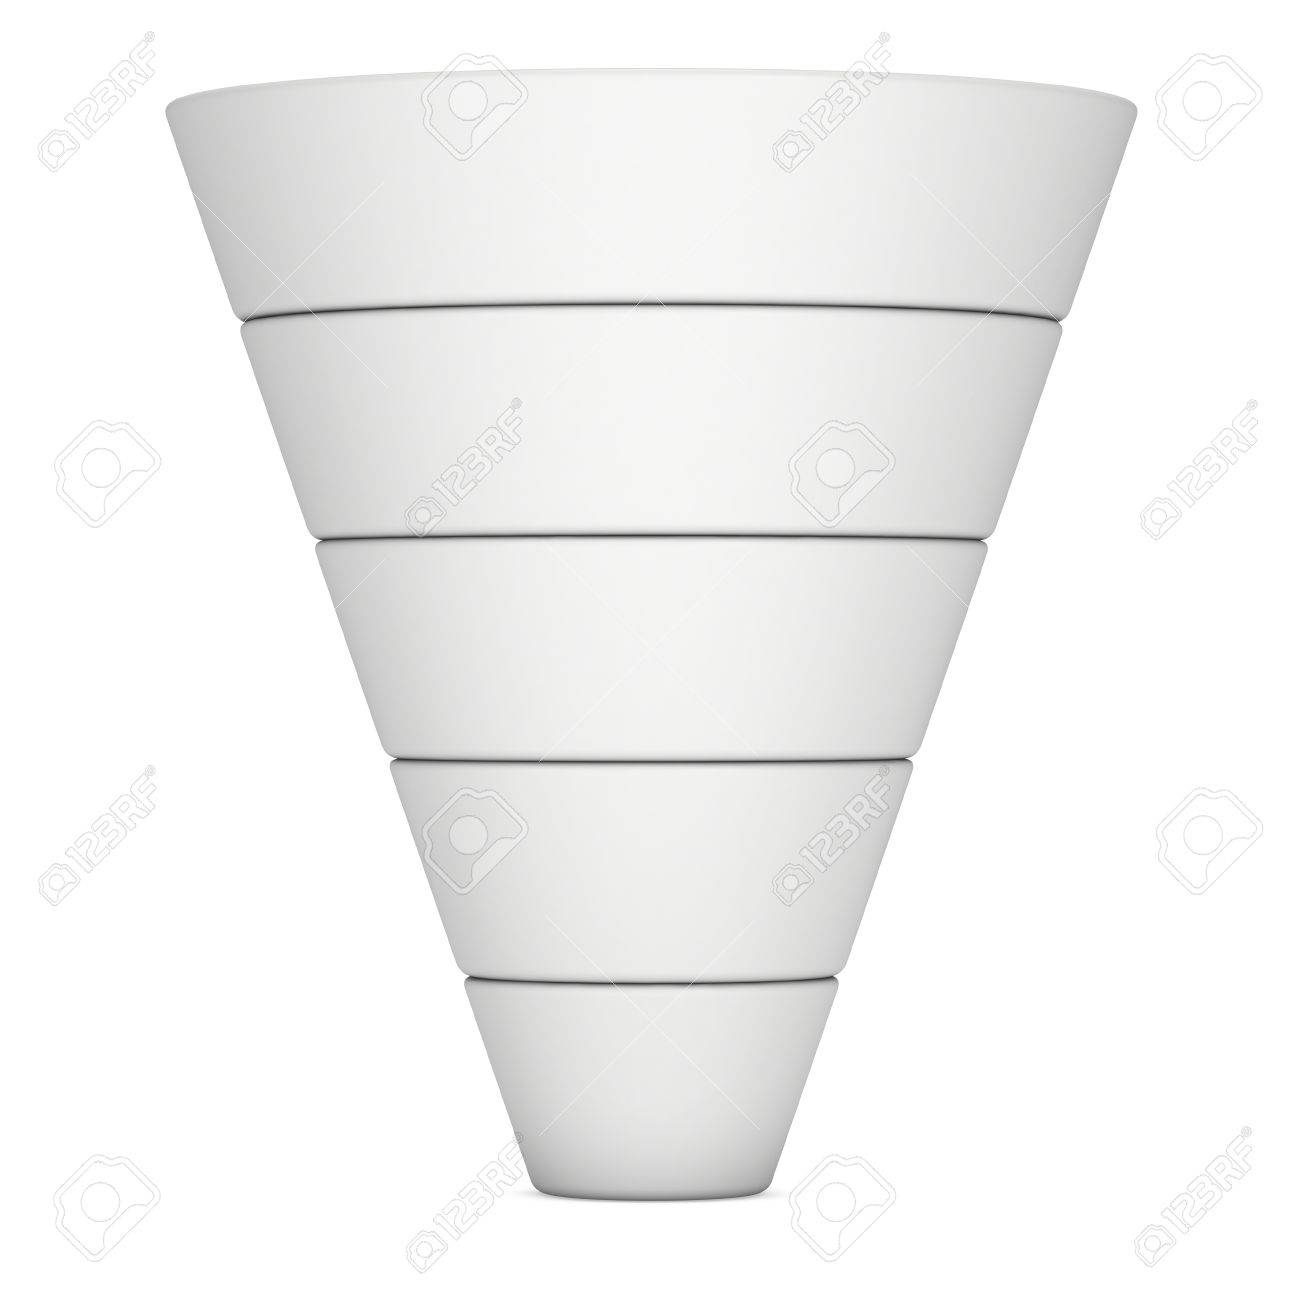 marketing funnel sales symbol 3d render isolated on white